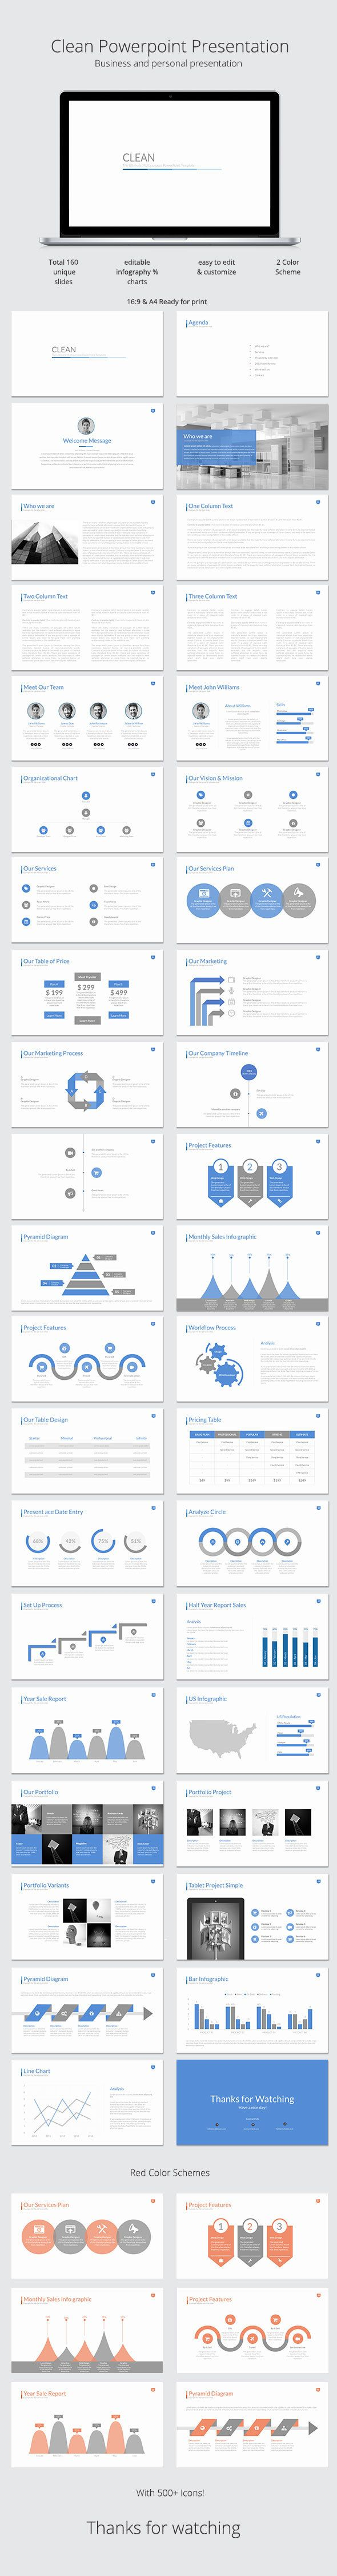 Usdgus  Surprising  Ideas About Powerpoint Presentations On Pinterest With Fascinating Clean Powerpoint Template With Delightful Powerpoint Slides Themes Also Download Powerpoint Template Free In Addition Free Trial Of Microsoft Powerpoint  And Powerpoint Templates D As Well As Pronoun Powerpoint Presentation Additionally Templete Powerpoint From Pinterestcom With Usdgus  Fascinating  Ideas About Powerpoint Presentations On Pinterest With Delightful Clean Powerpoint Template And Surprising Powerpoint Slides Themes Also Download Powerpoint Template Free In Addition Free Trial Of Microsoft Powerpoint  From Pinterestcom